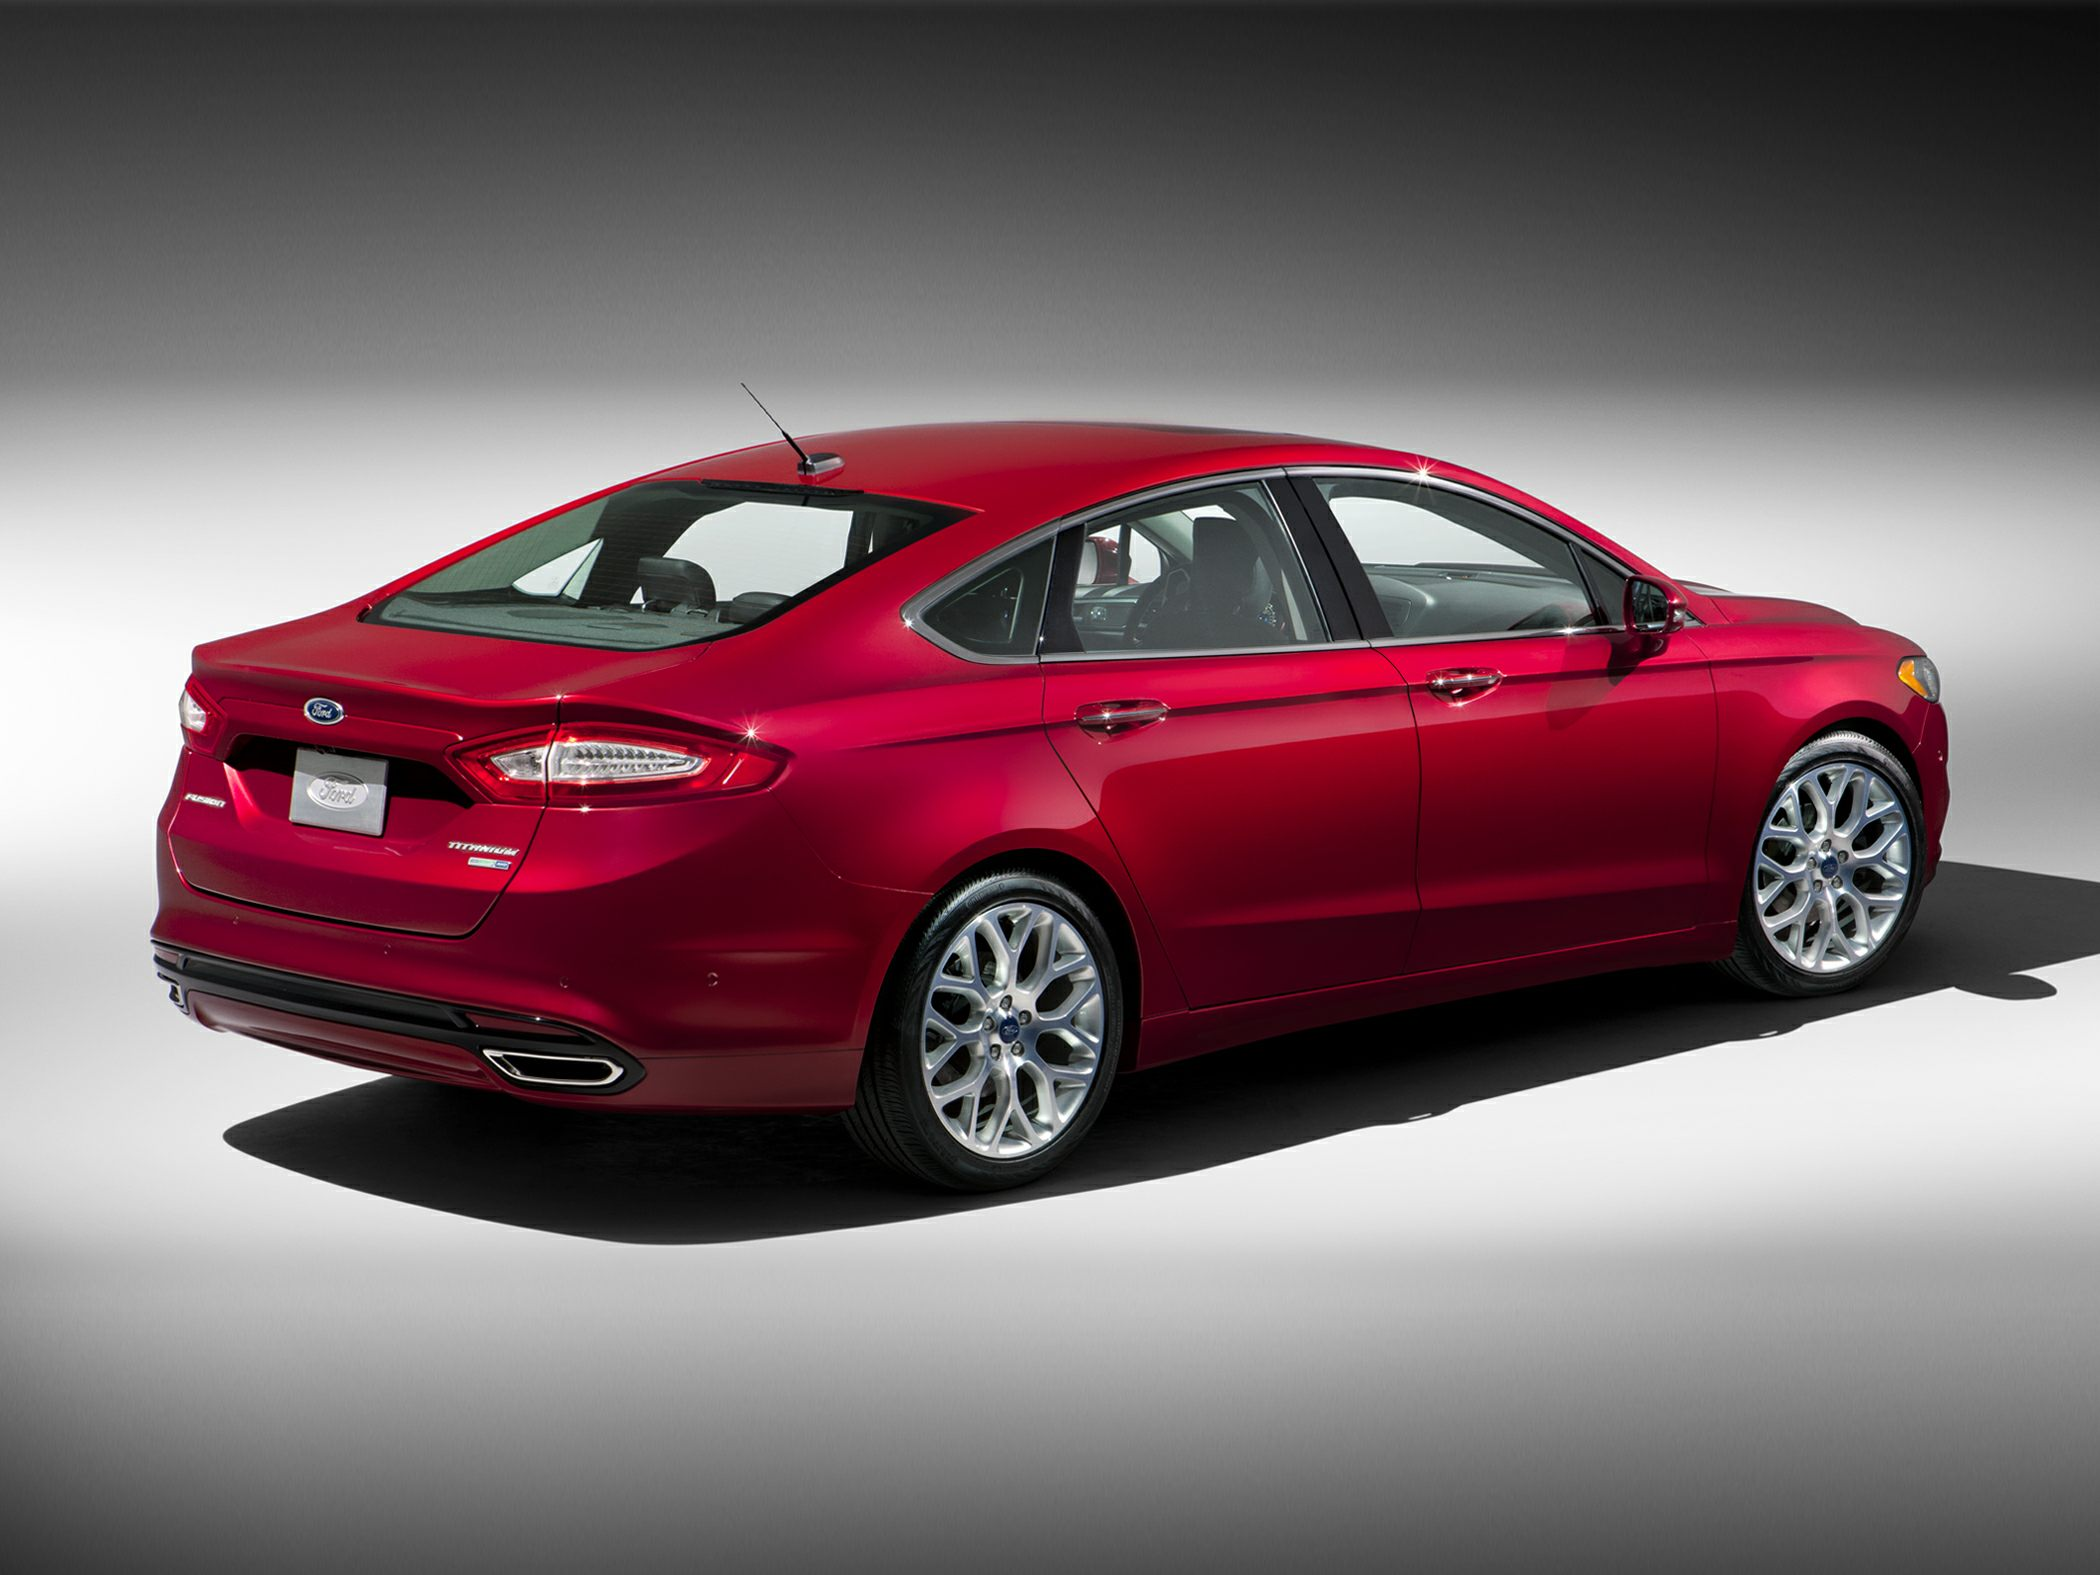 2015 Ford Fusion Rear